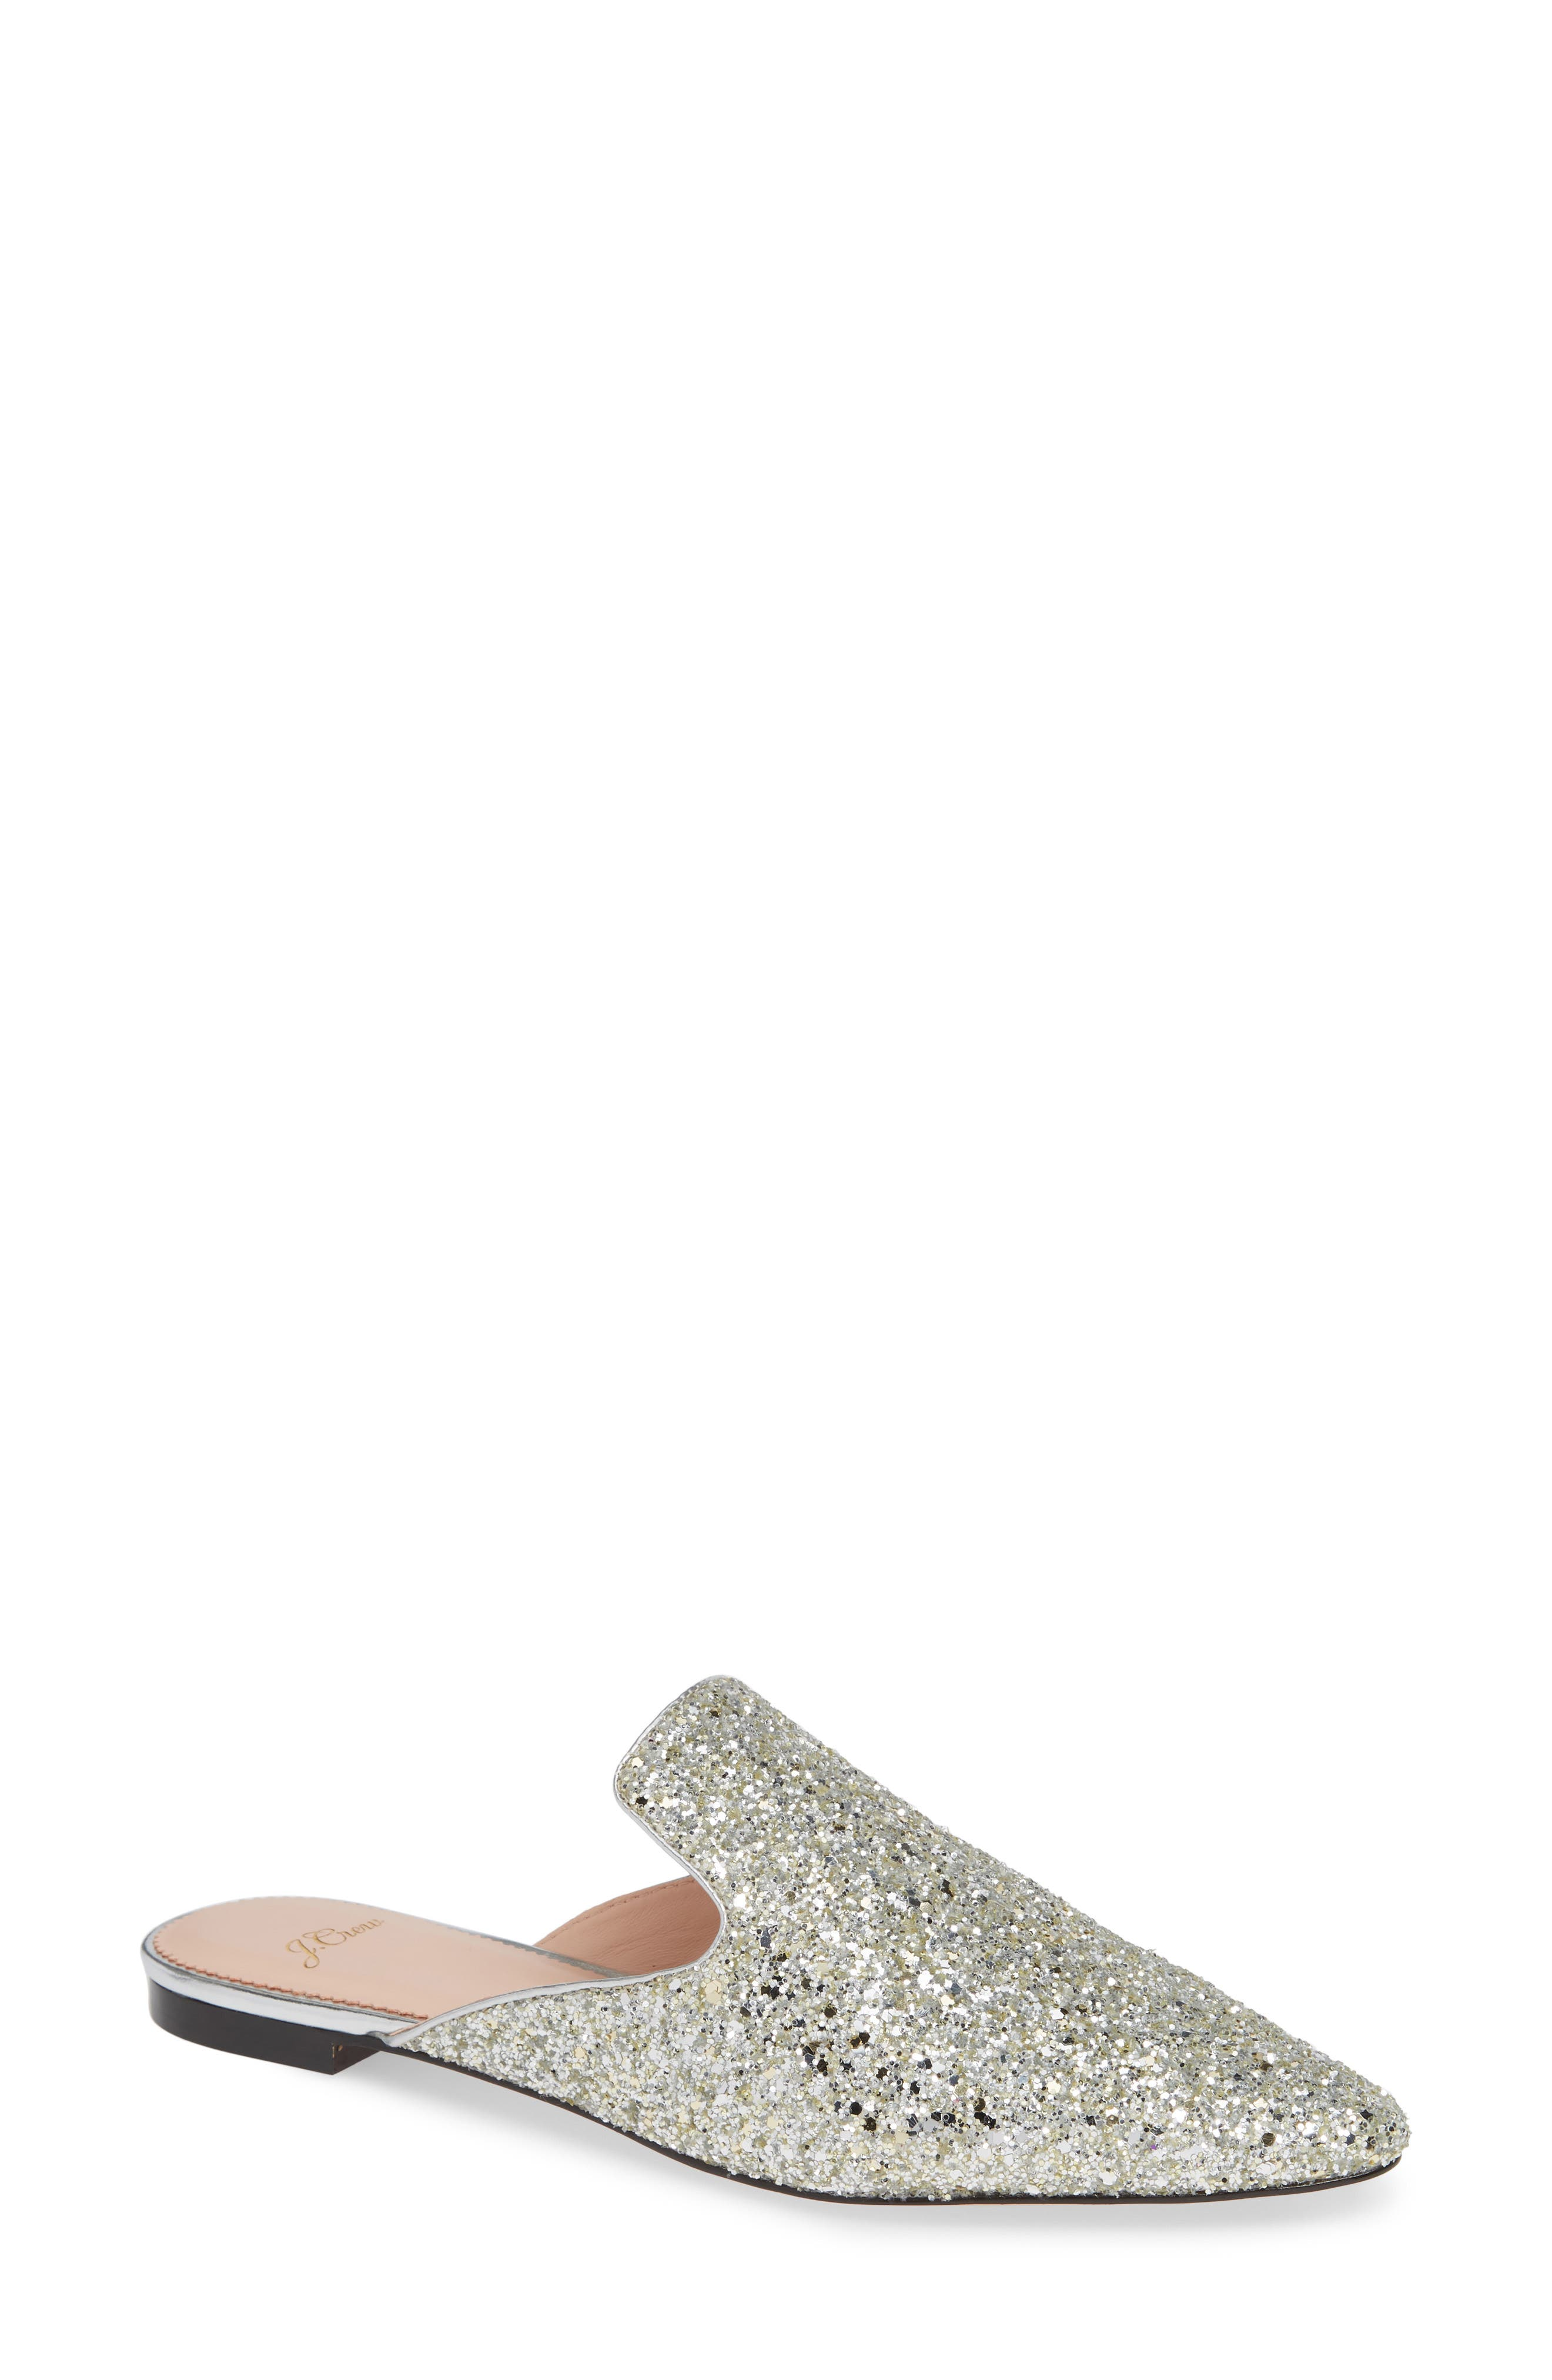 Pointy Toe Slide,                             Main thumbnail 1, color,                             SILVER GLITTER